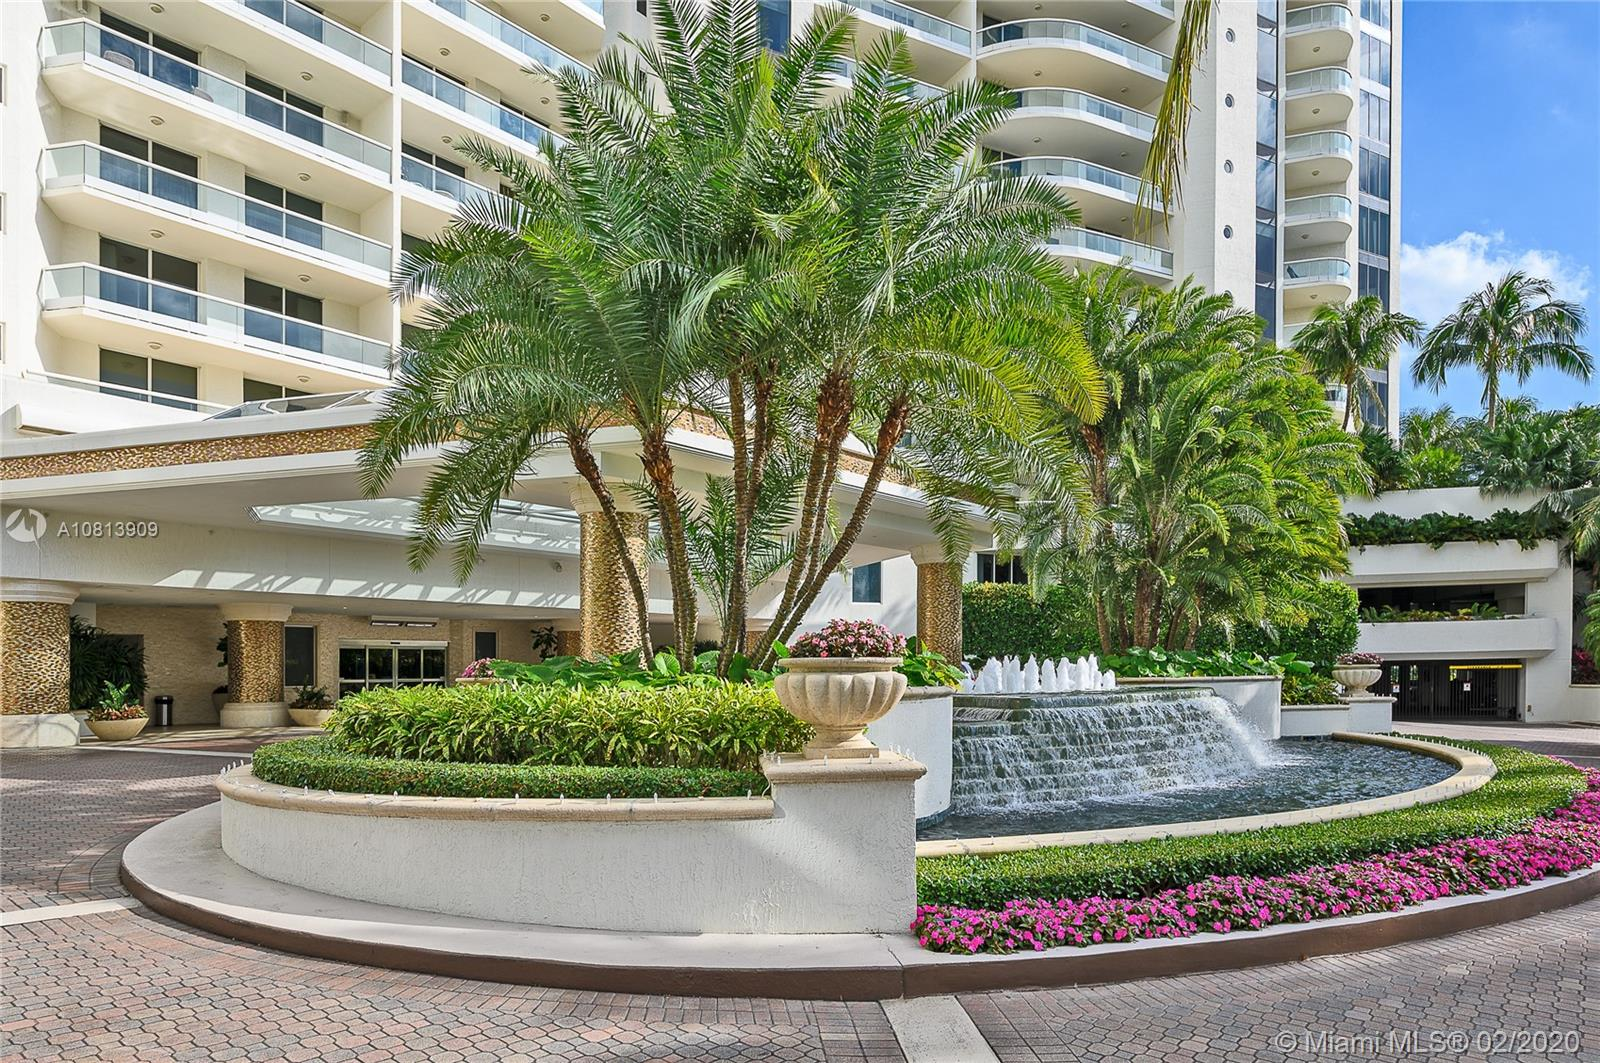 Low floor lovers unite as a private elevator brings you into this upgraded unit w/ direct Intracoastal views. This flow thru home boasts 3 ensuite bedrooms, large media room/convertible bedroom & half bathroom. Upgraded features such as marble floors & electronic window blinds thruout. Original owners/residents have created a unit w/both functionality & unique design. The standard kitchen has been replaced w/sleek cabinetry & contains useful appliances such as auto sensitive faucet,dual refrigeration drawers and gas burners. Counters are granite w/a center island. Williams Island is a magical getaway housing Spa,community pool,restaurants,walk/bike paths, playground, 16 clay tennis courts & house of worship.Bella Mare provides juice bar daily for feeding body/soul,infinity pool & own spa.